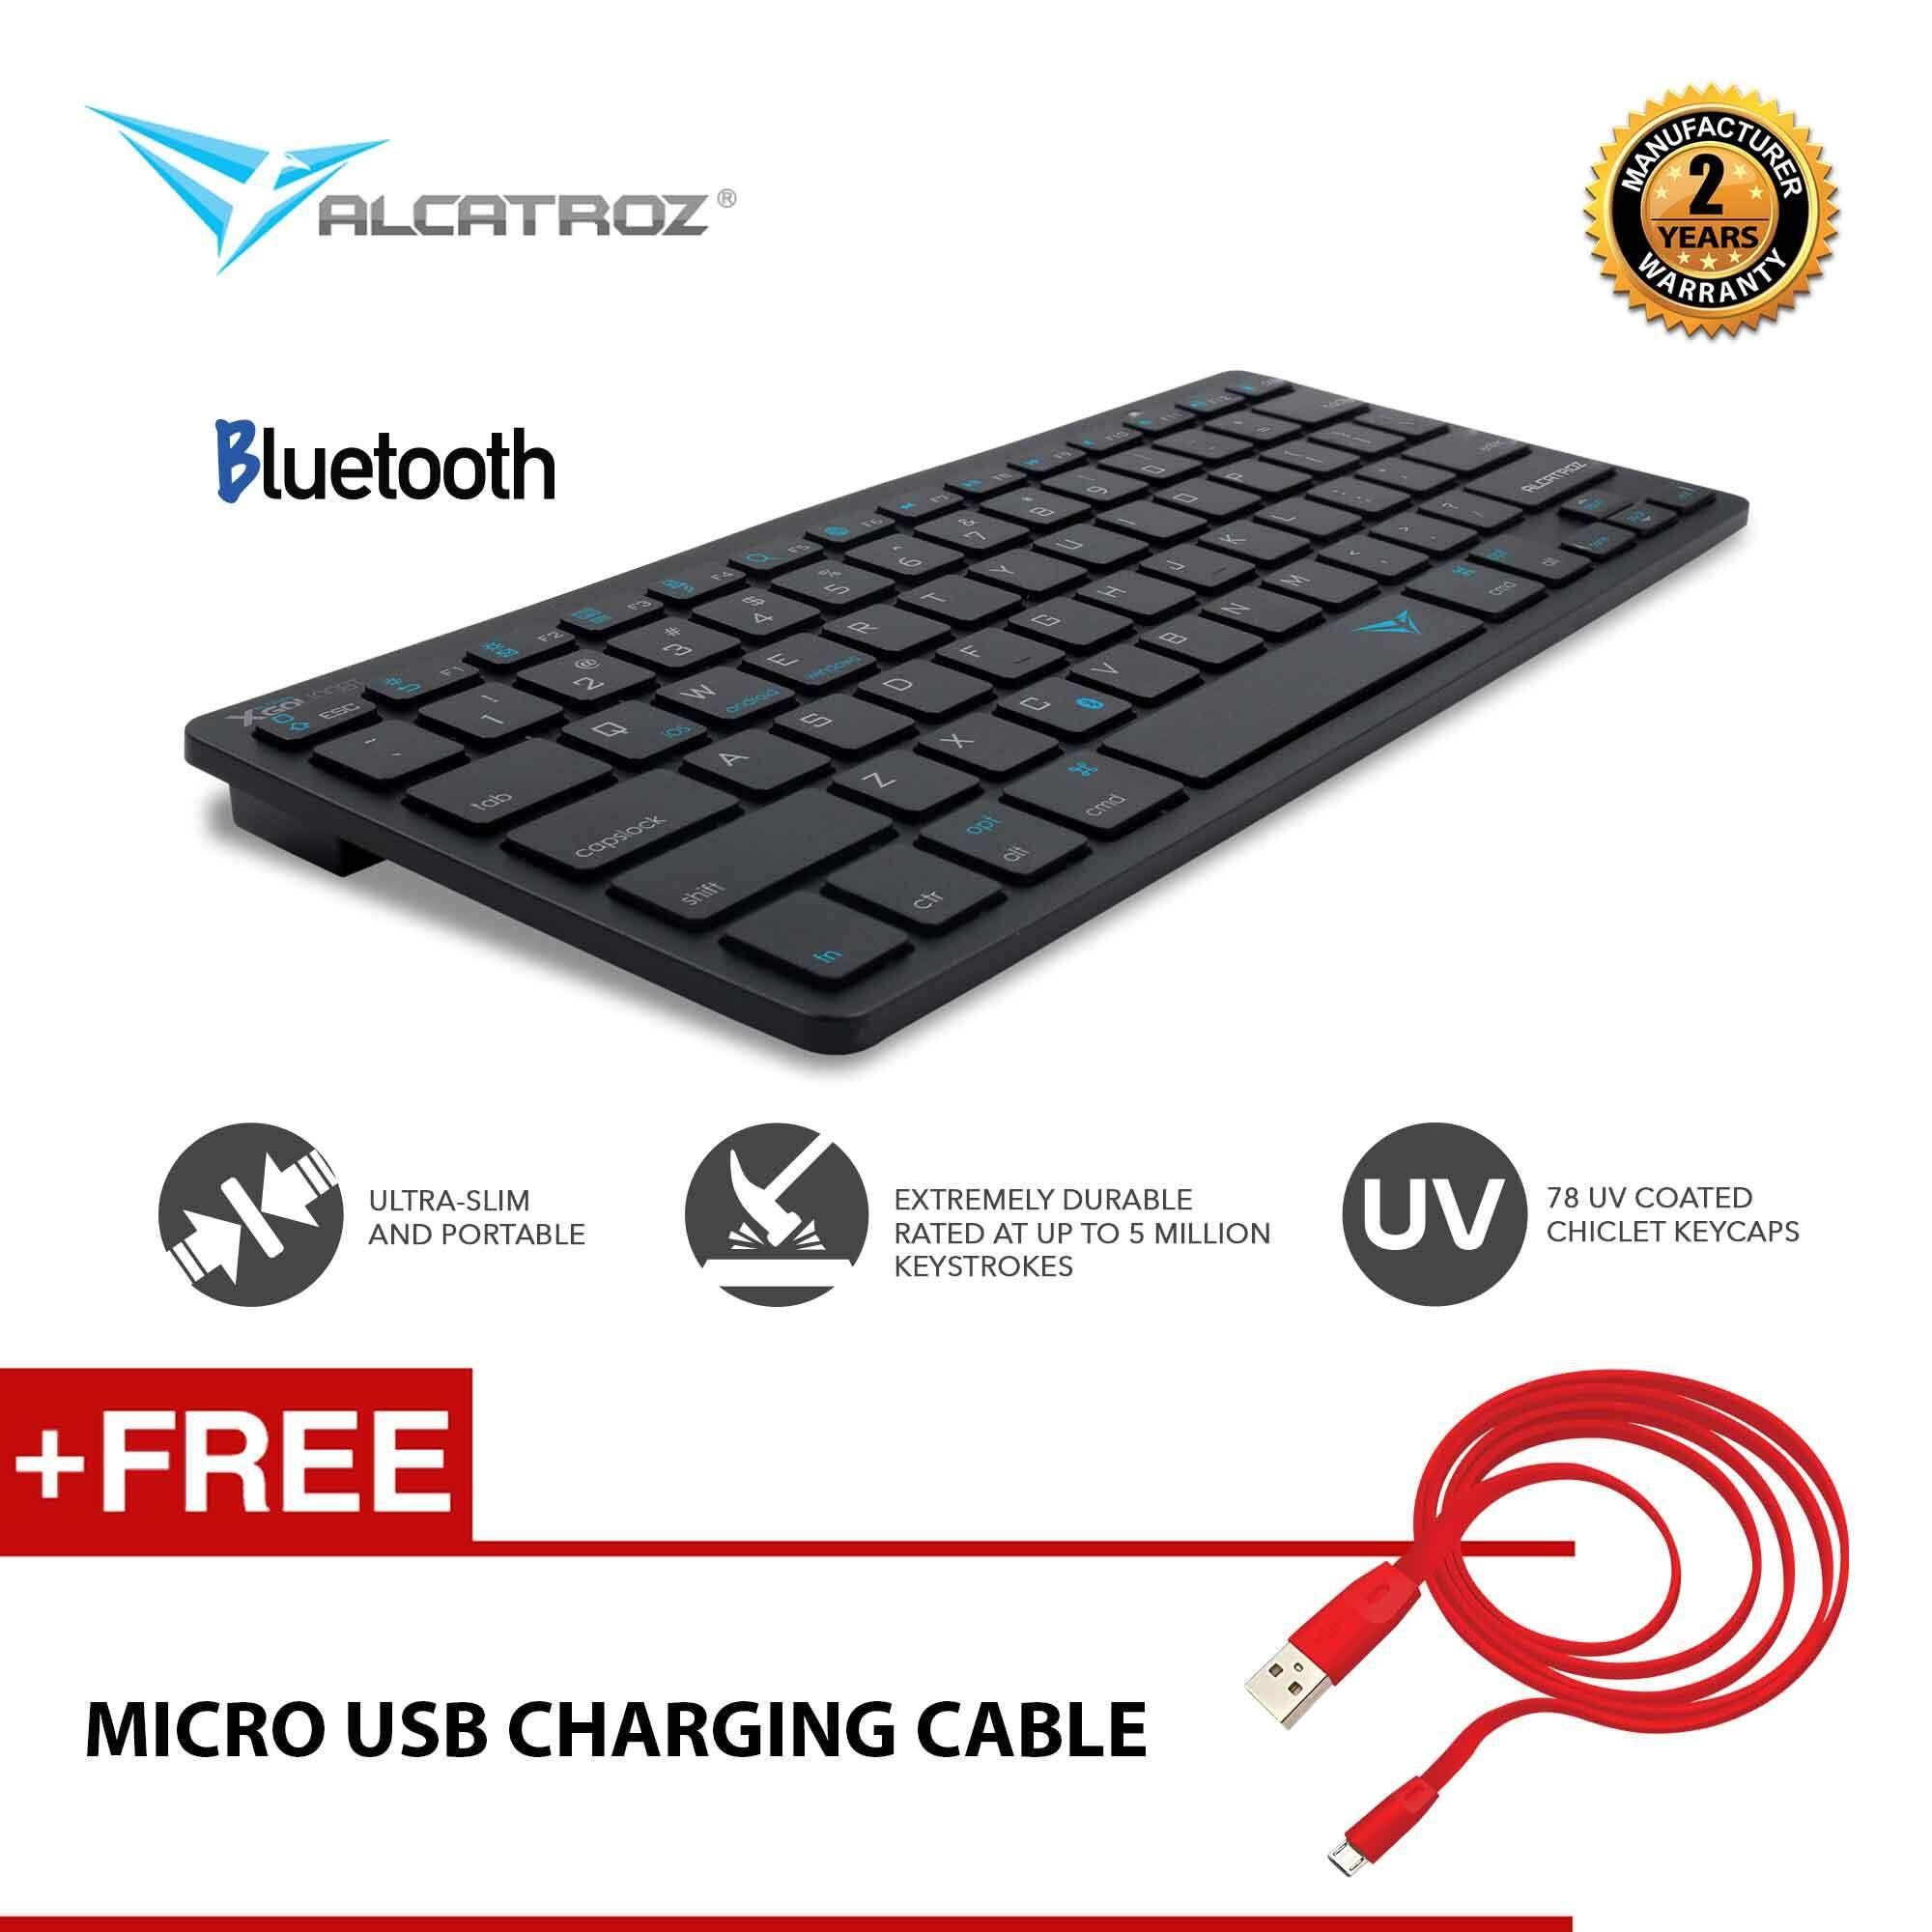 Alcatroz Xplorer 7770 Lfx Keyboard Mouse Sell N200 Cheapest Best Quality My Store Myr 49